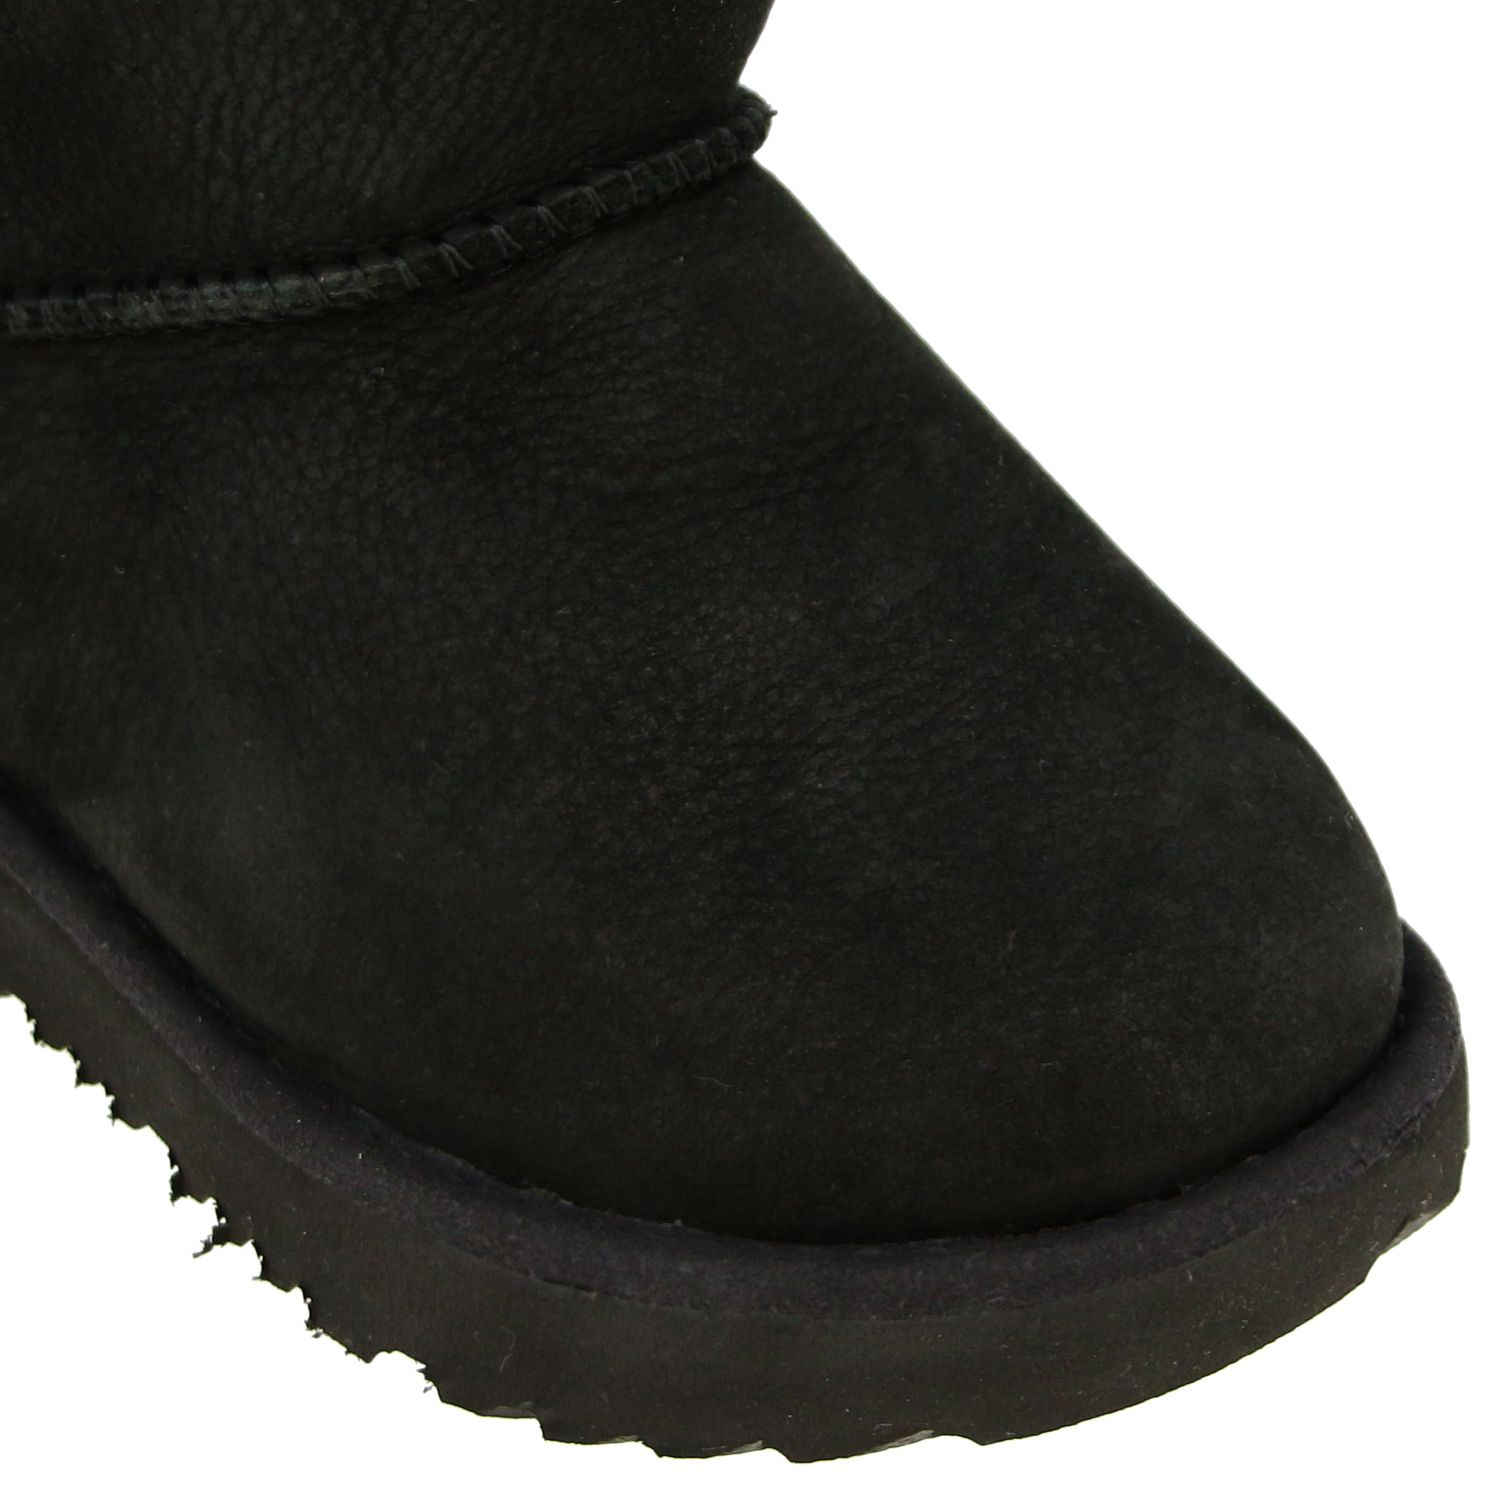 Shoes kids Ugg Australia black 4